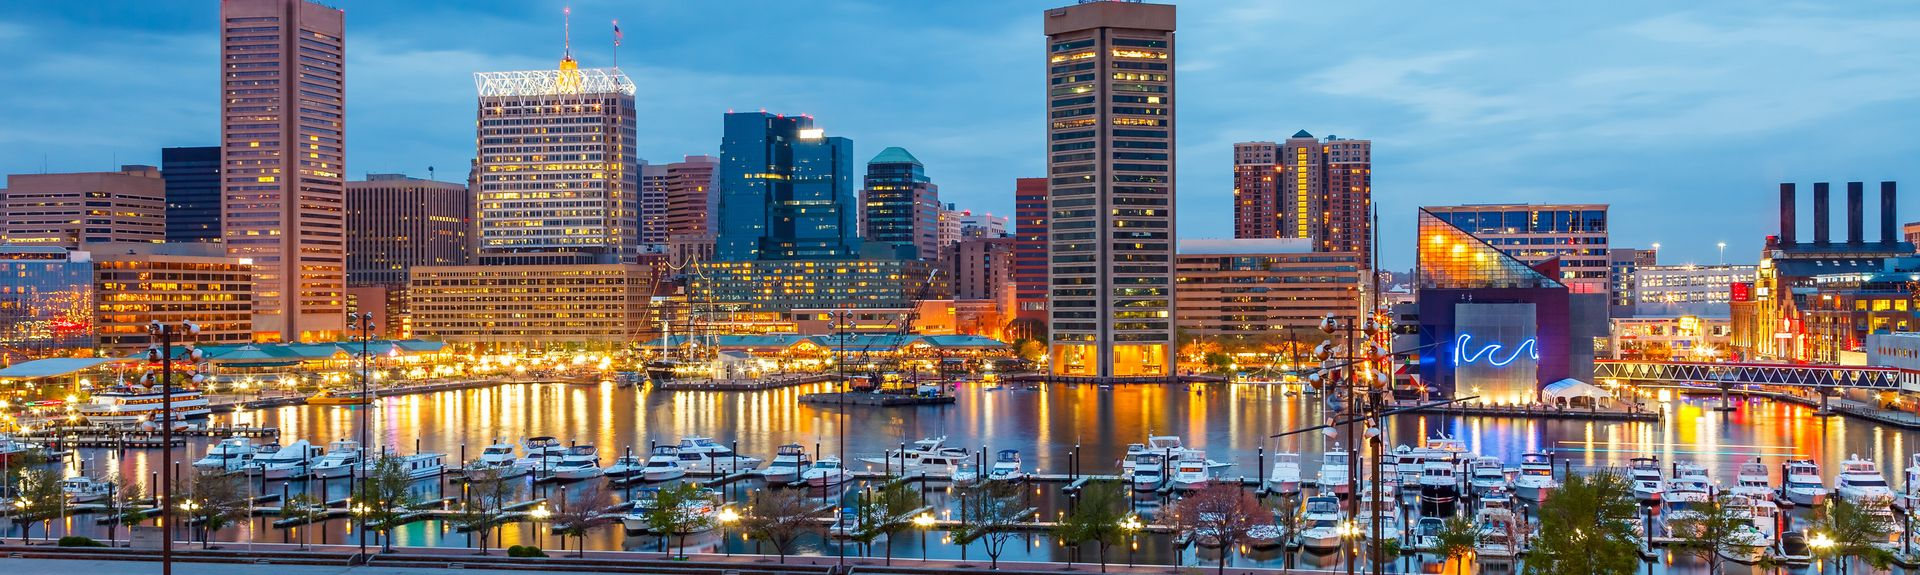 Baltimore, Maryland, Yhdysvallat